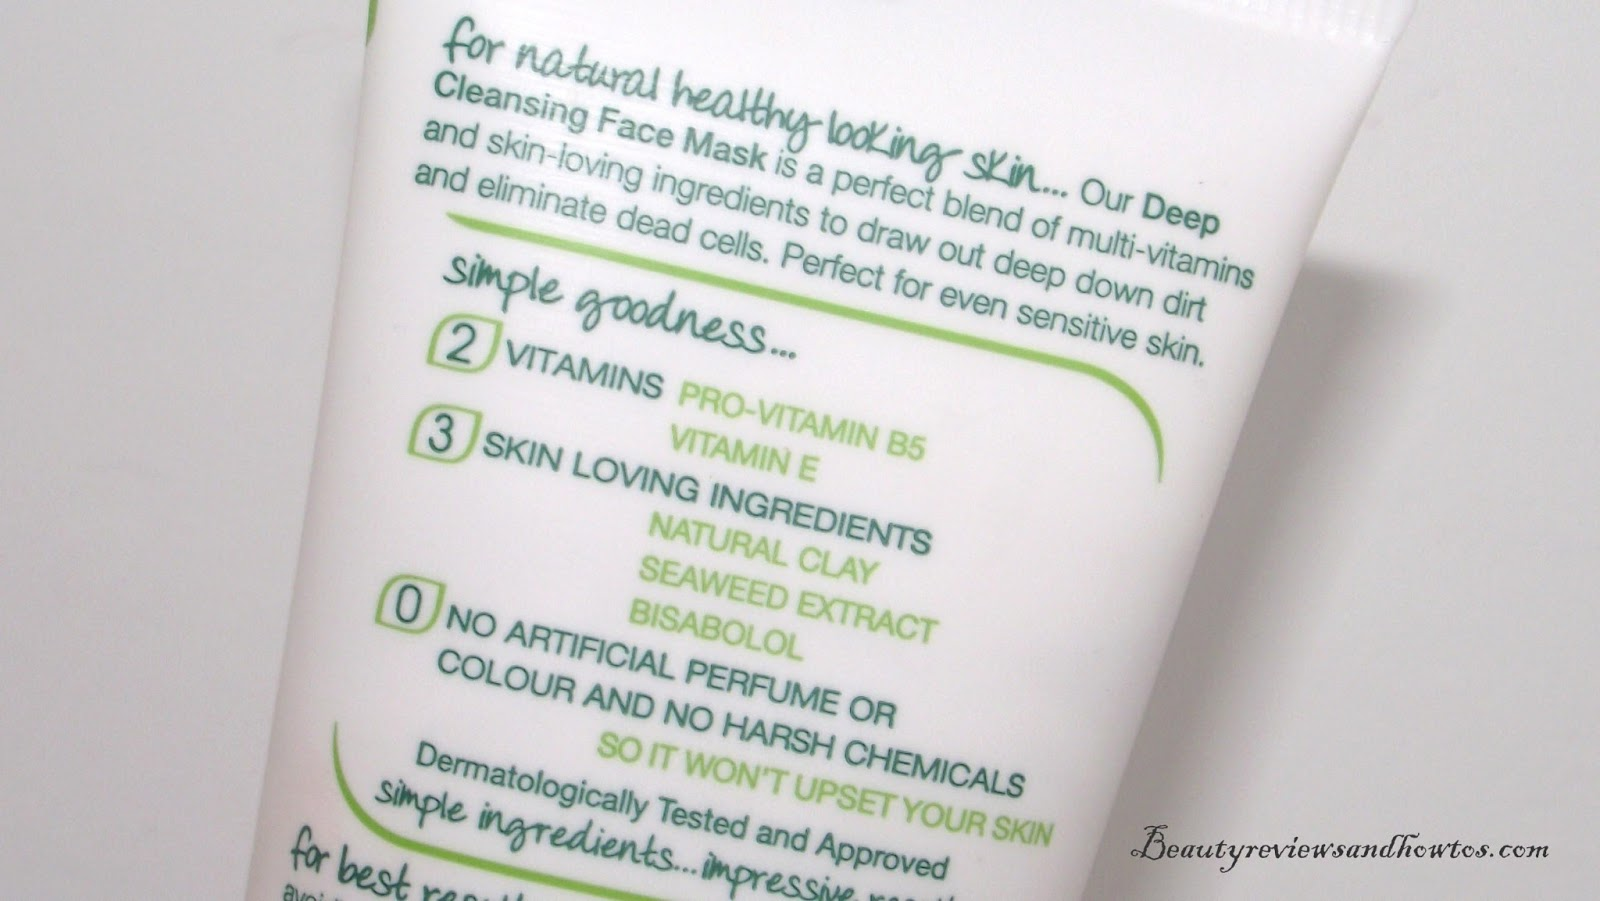 simple kind to skin deep cleansing face mask review